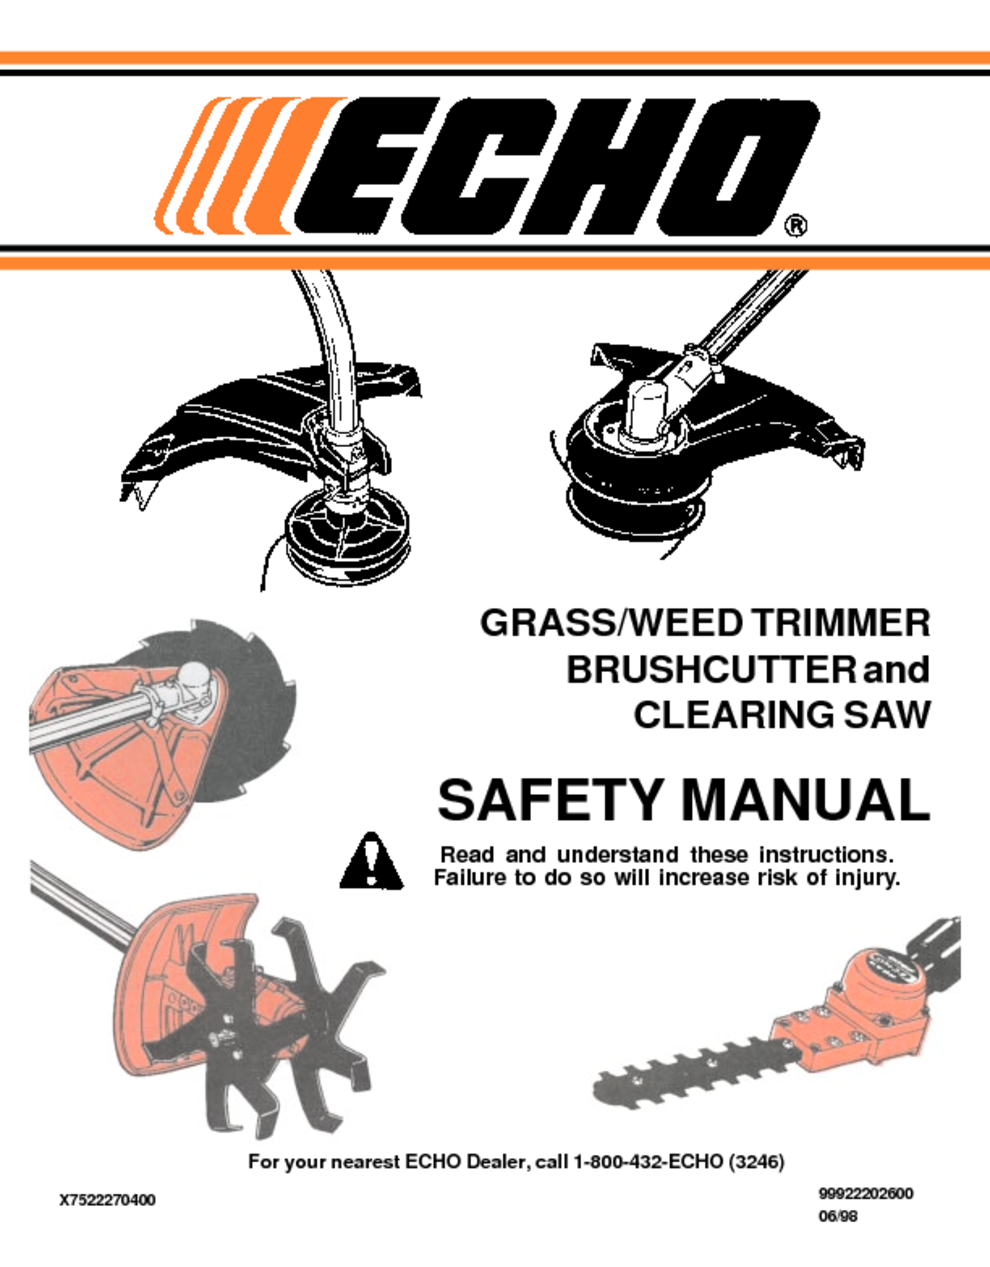 Stihl Trimmers And Brushcutters Manual Guide